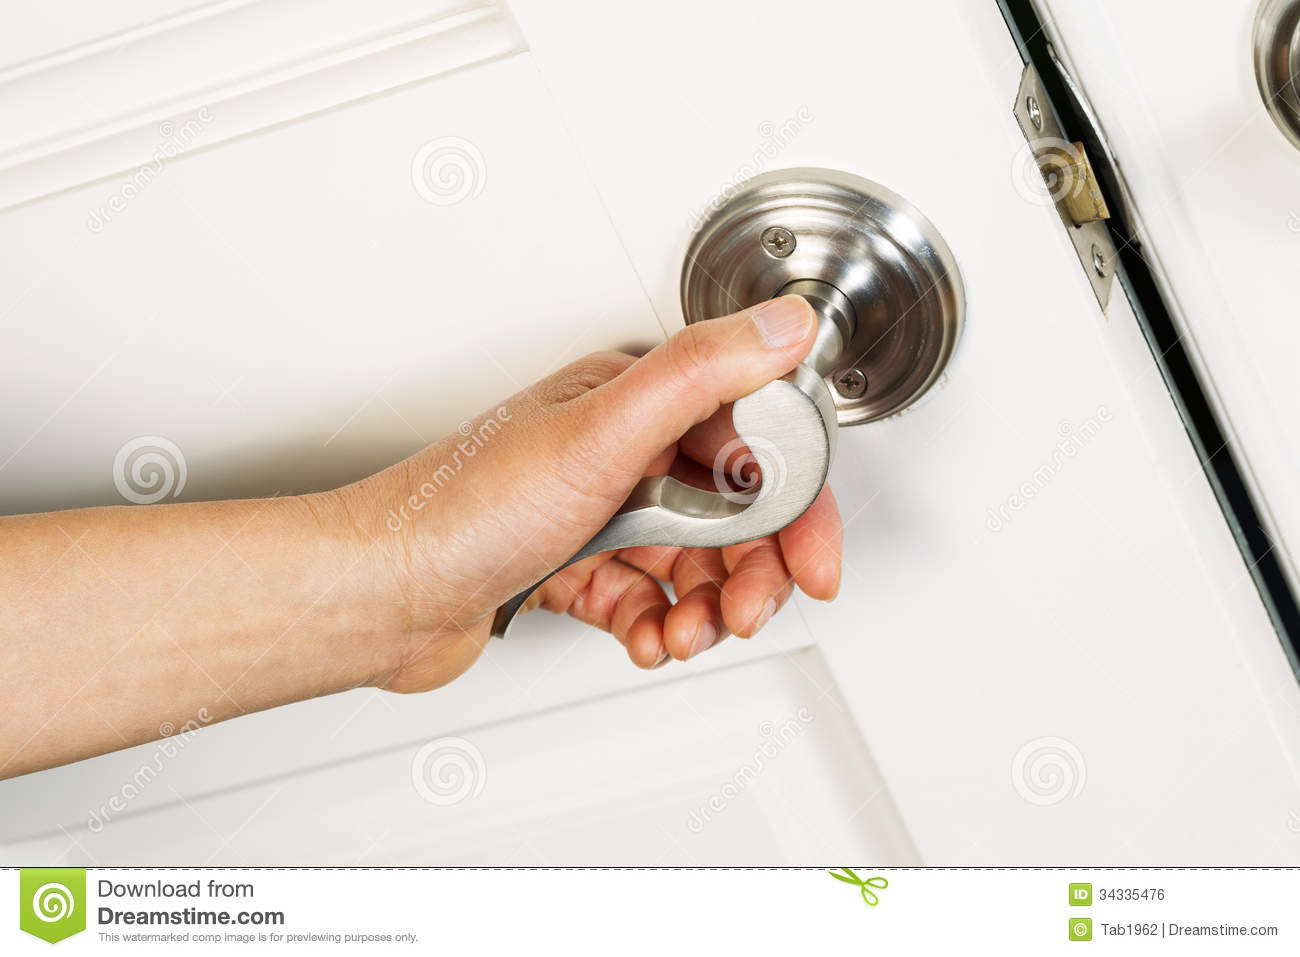 Open Front Door Clip Art - Thumbs dreamstime com